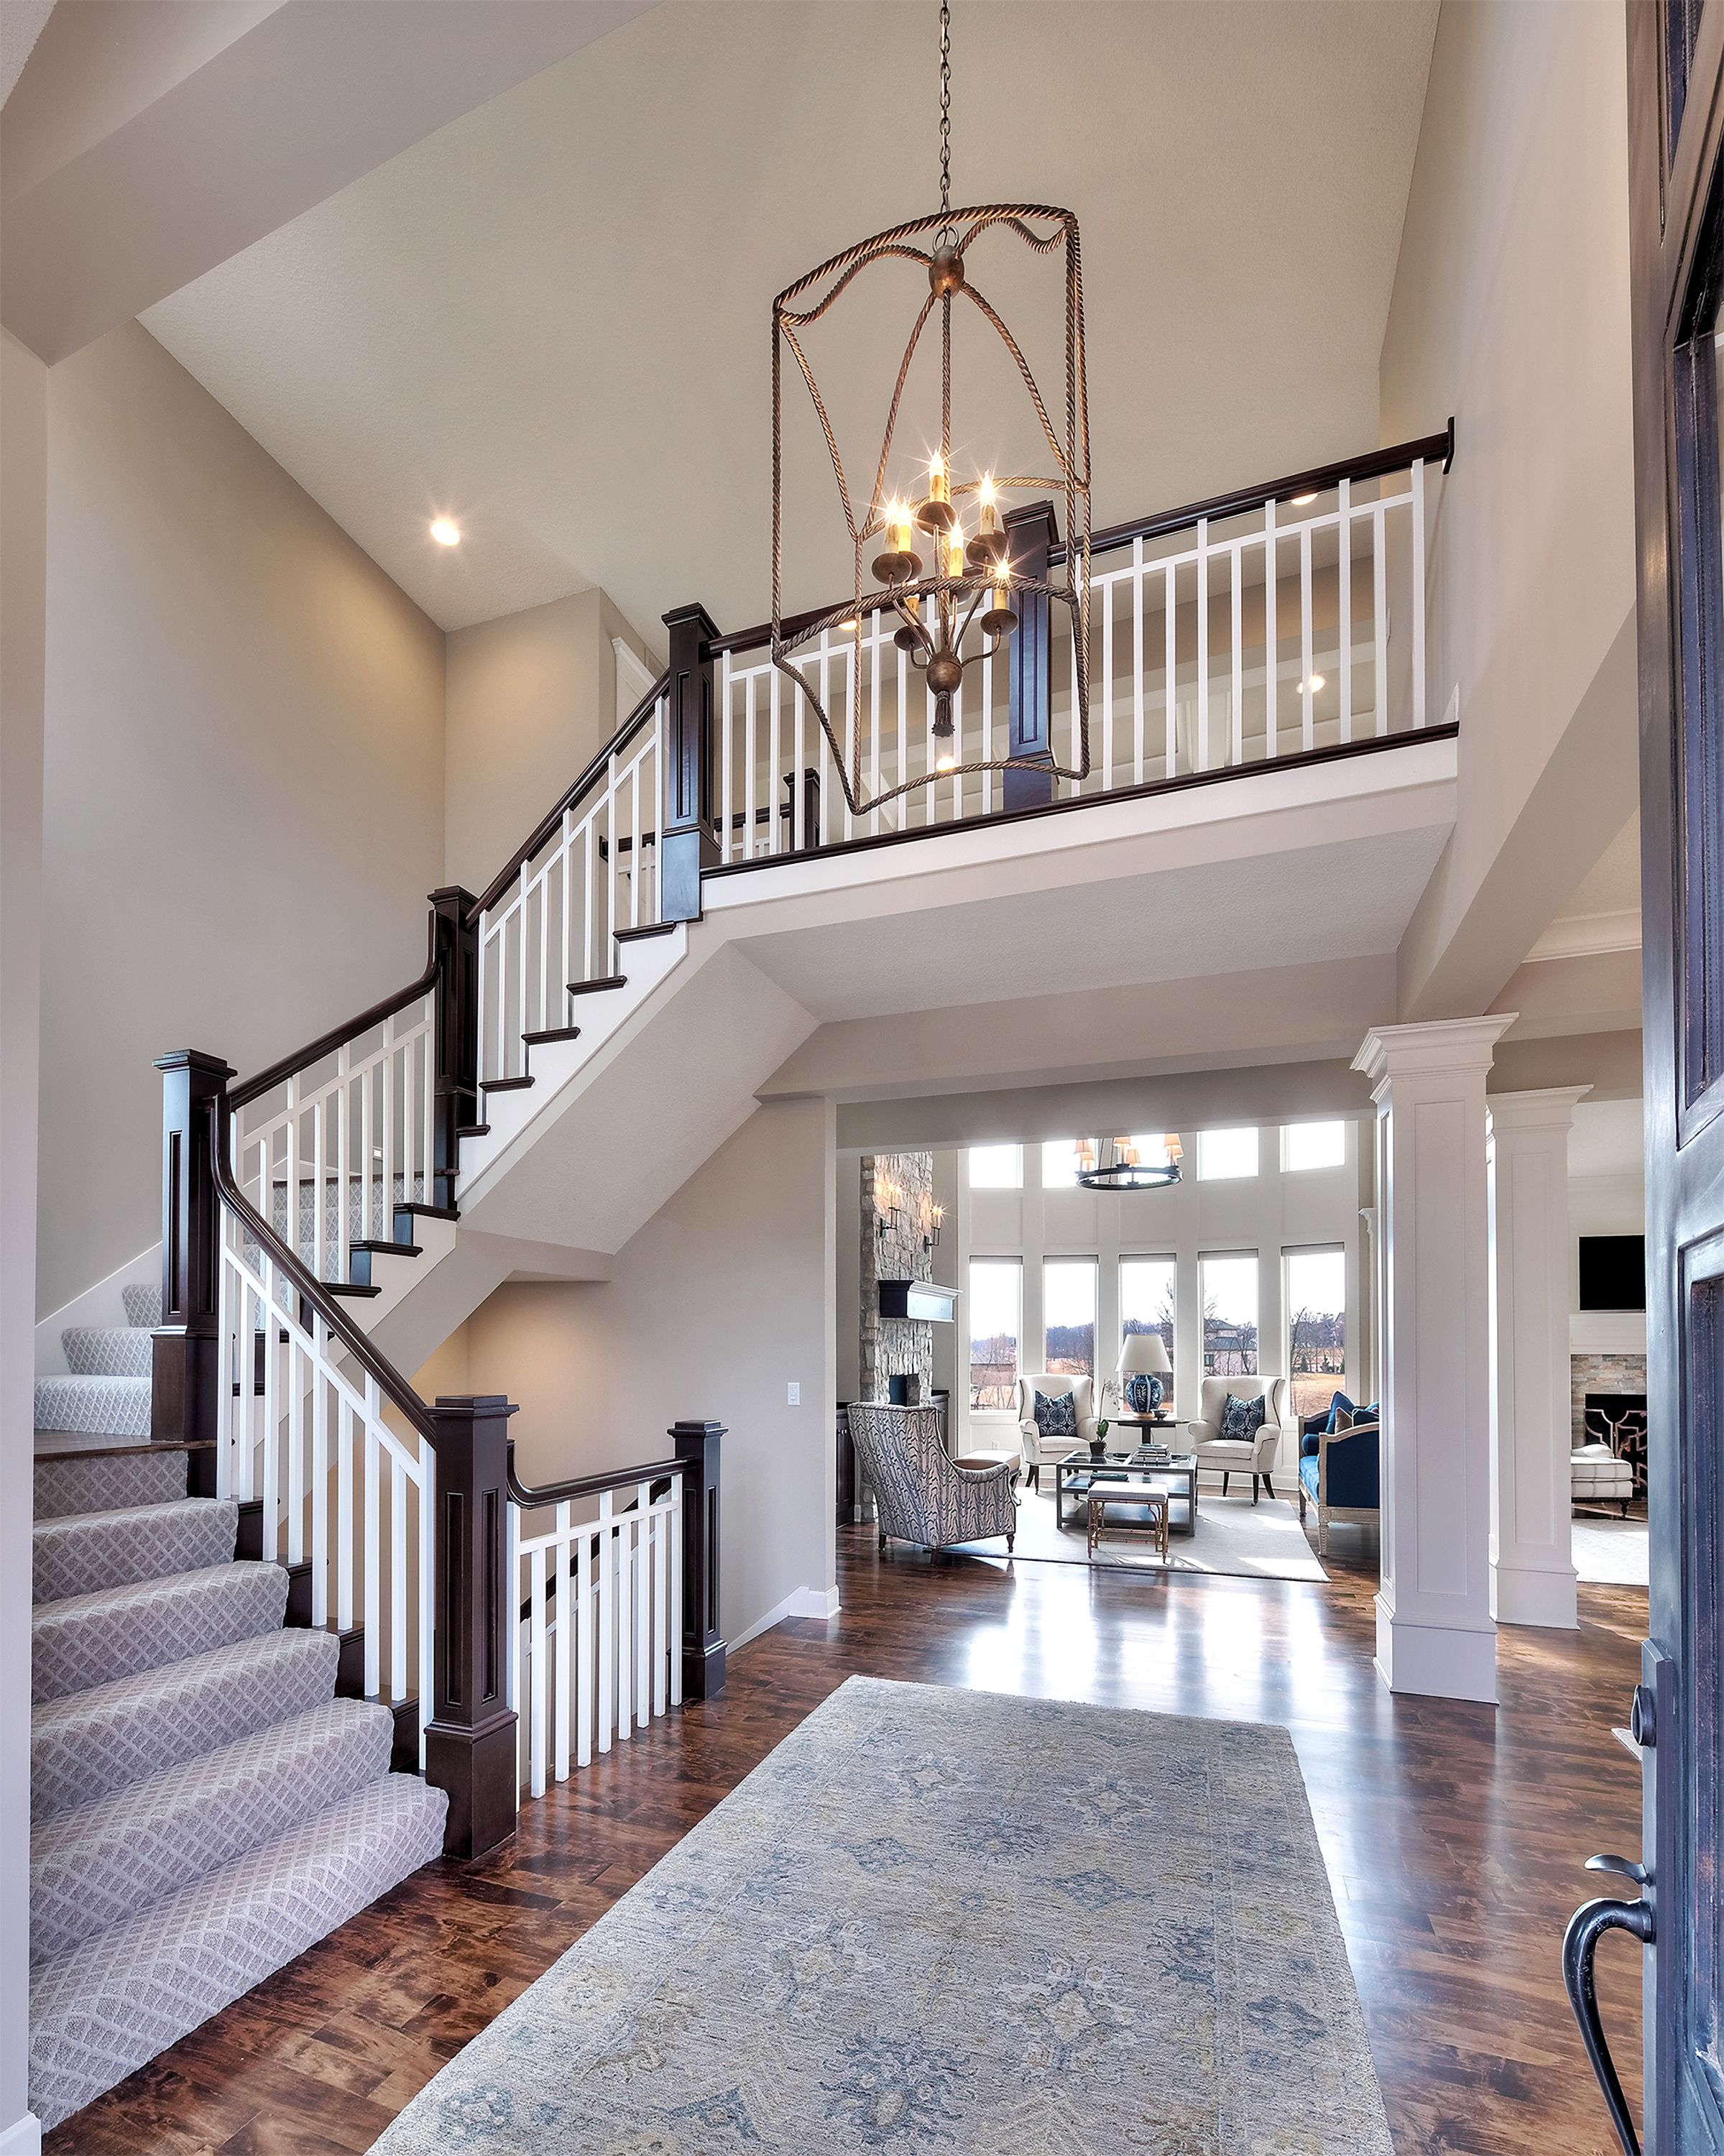 Entry Foyer Plans : Entry curved staircase open floor plan overlook from